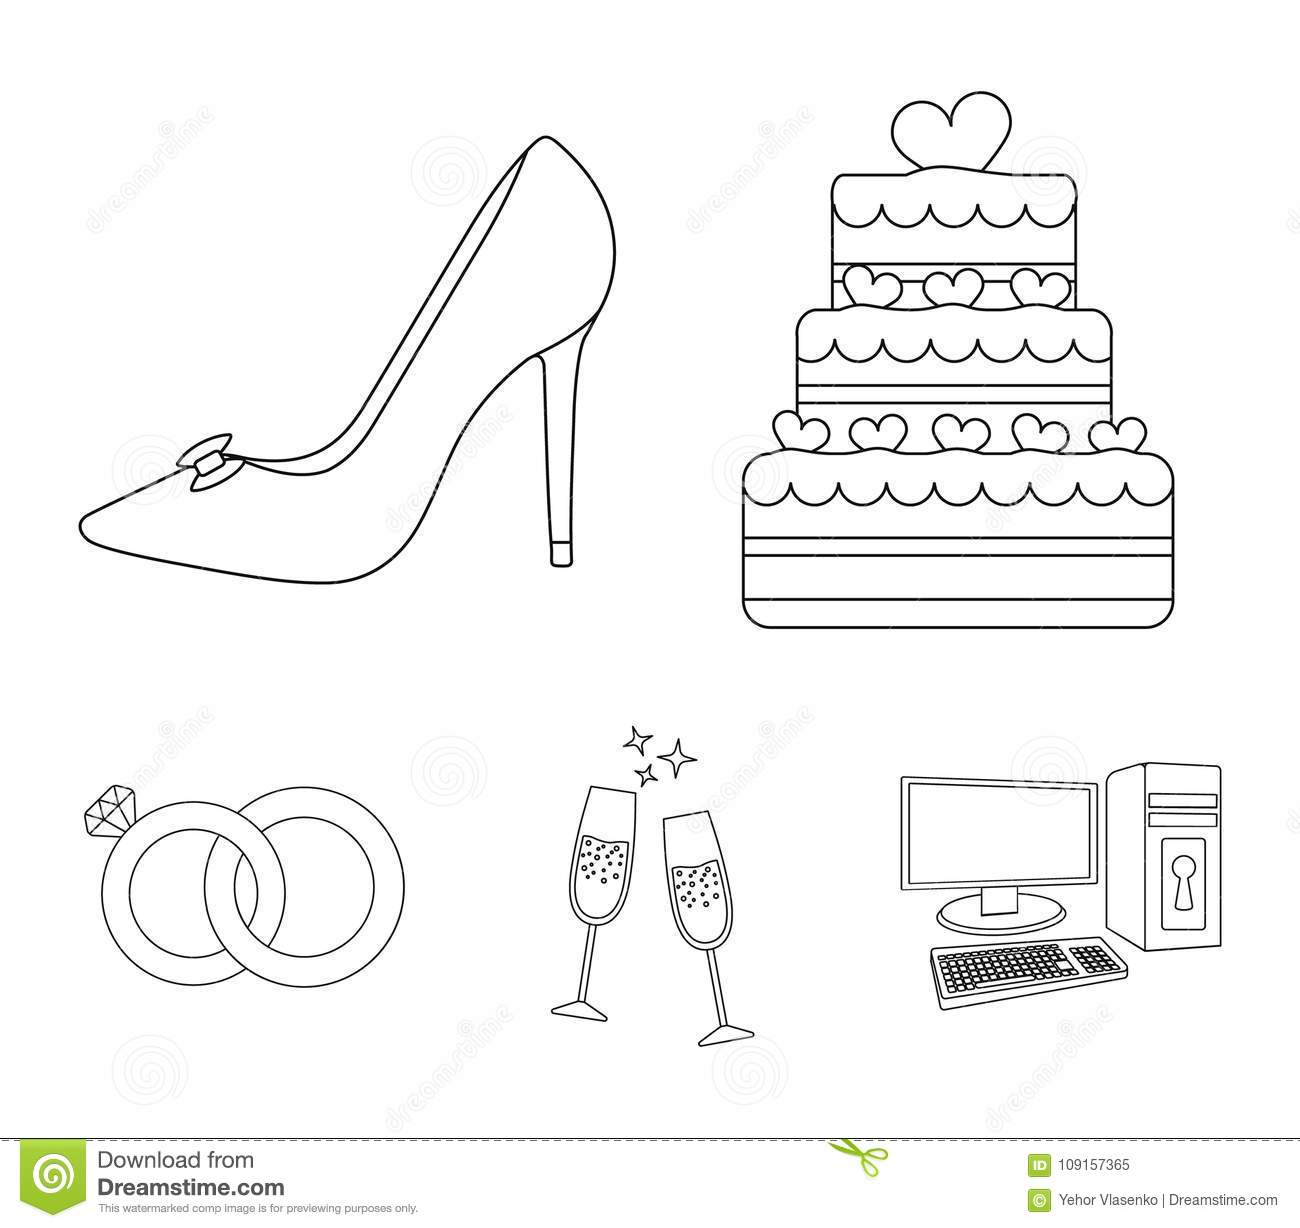 Thumbs Dreamstime Com Z Wedding Cake Bride S Shoes